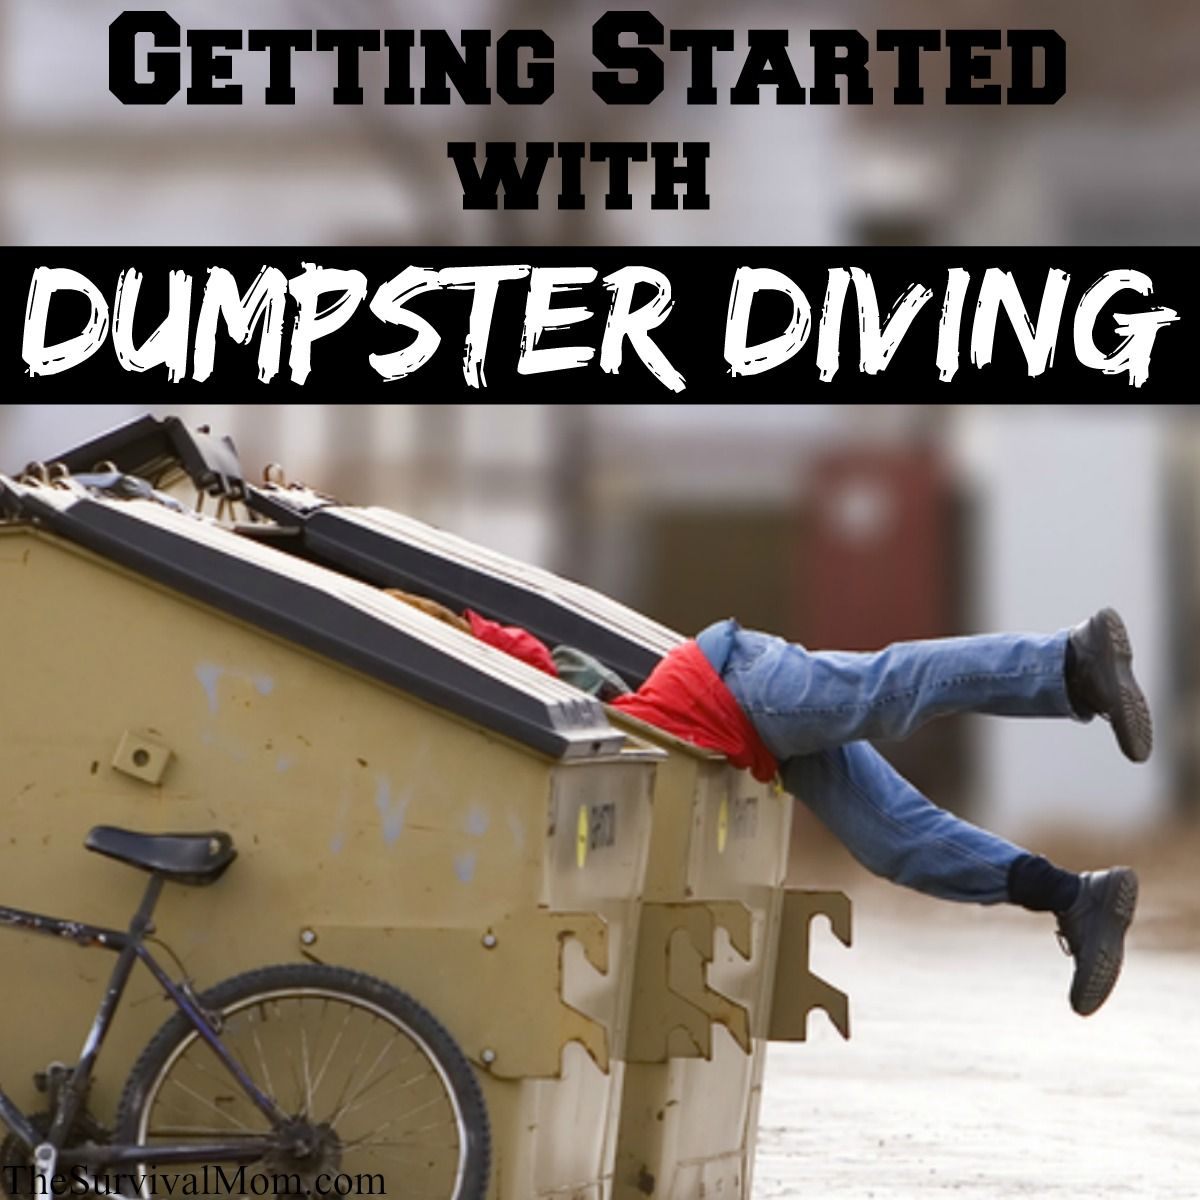 gamestop dumpster diving stores in one night part recap  gamestop dumpster diving 4 stores in one night part 3 recap dumpster diving dumpster diving